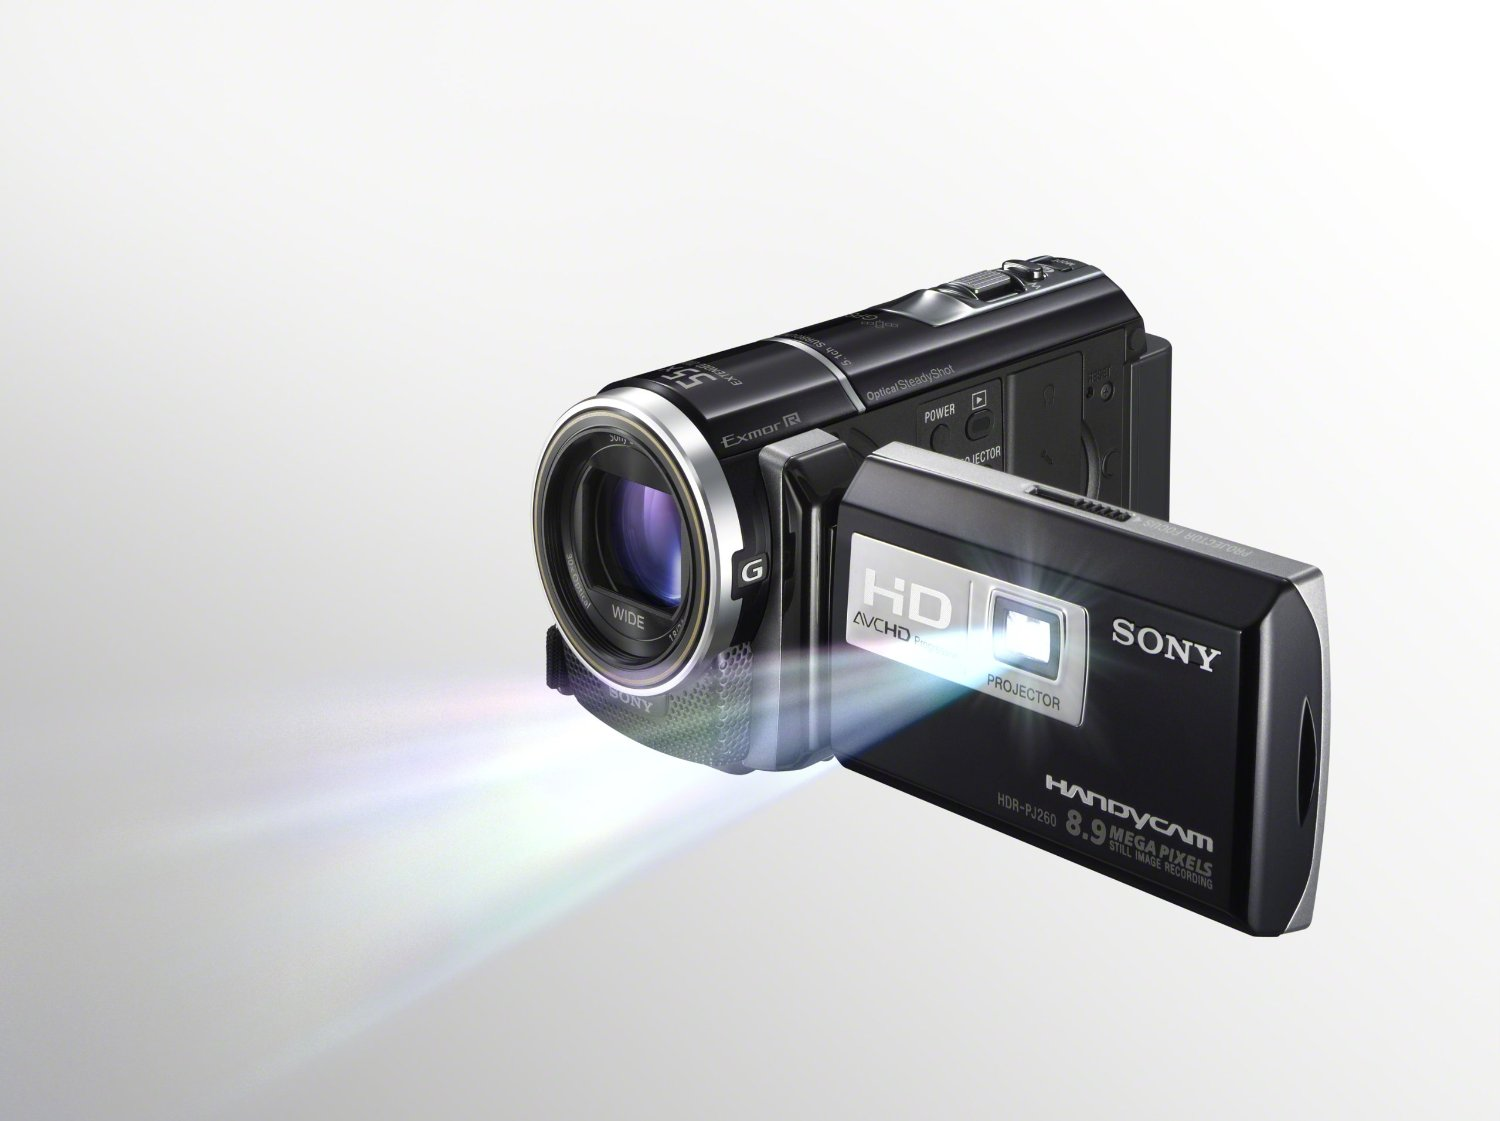 Sony HD ghost hunting video camera with built in projector